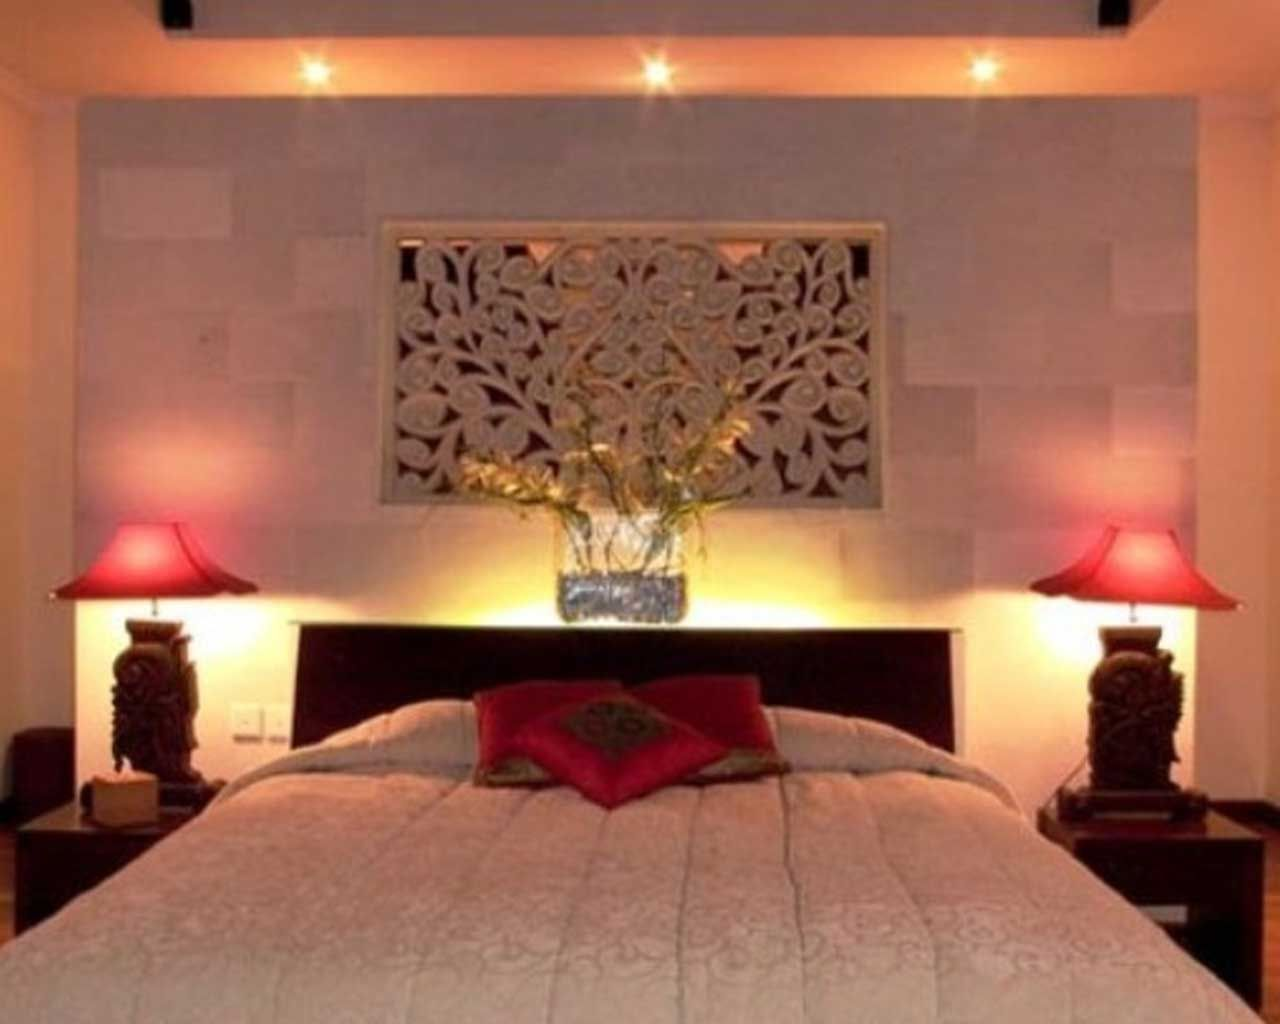 Romantic bedroom decorating ideas pinterest - Romantic Bedroom Decor Ideas Best Romantic Bedroom Lighting Ideas Hot Style Design